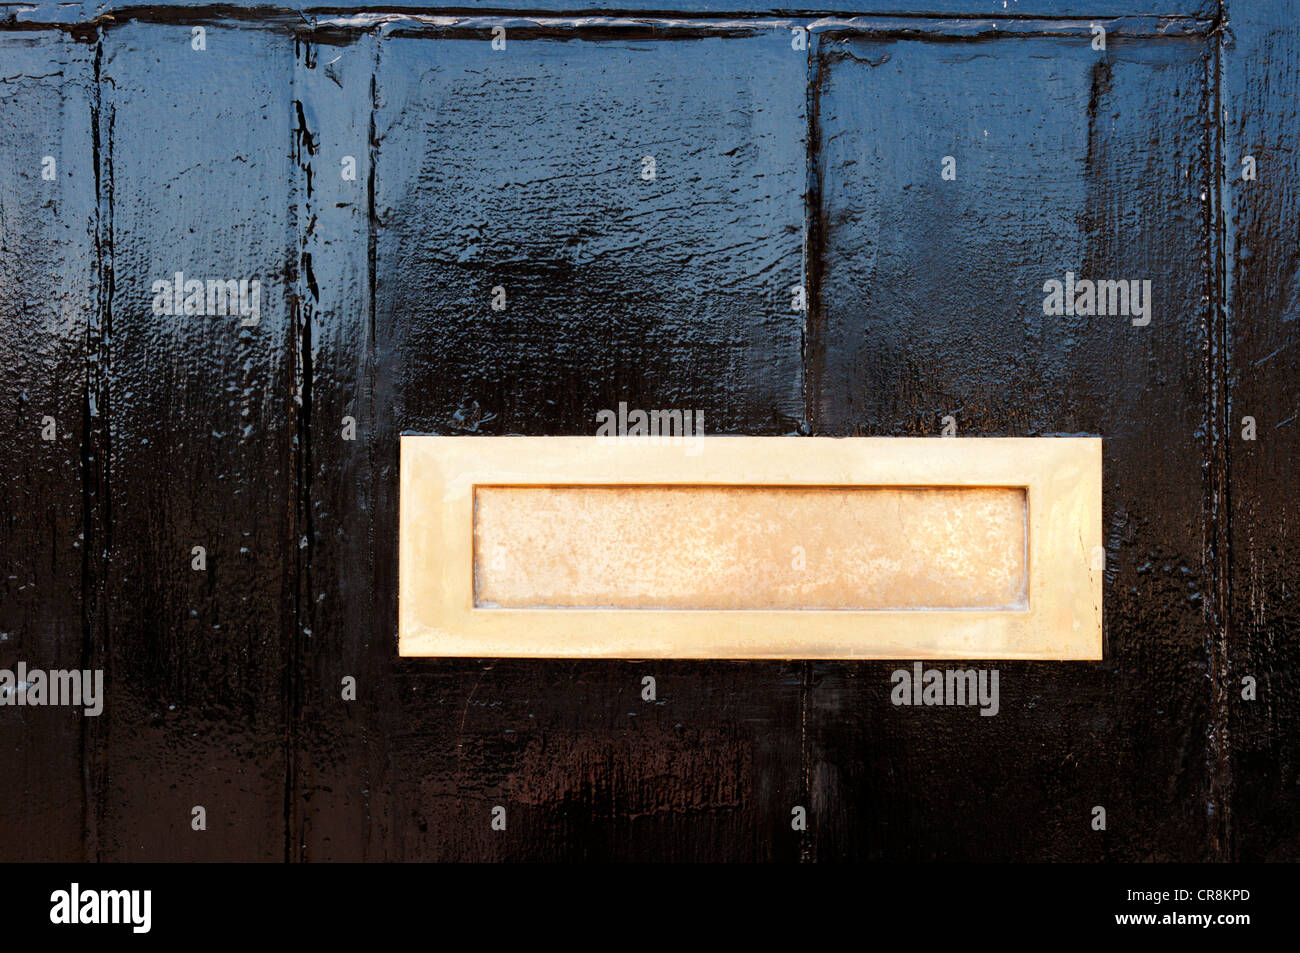 A gold metal letterbox on a black painted door. - Stock Image